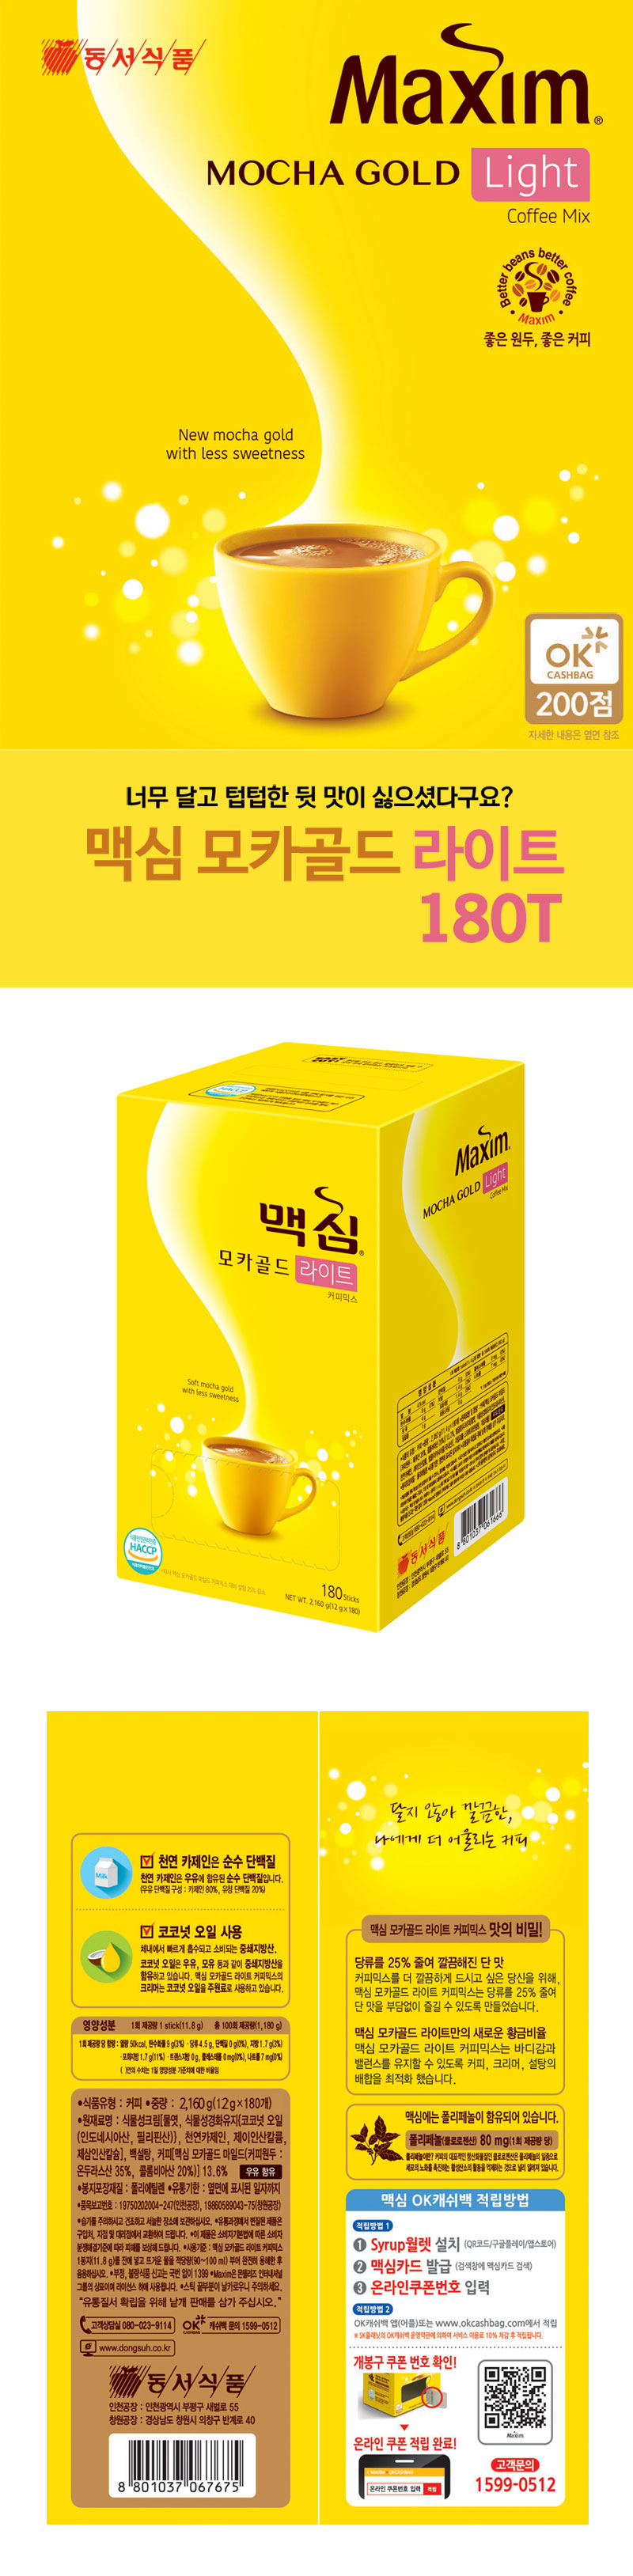 [ DongSuh ] Maxim mocha gold light 180T*6